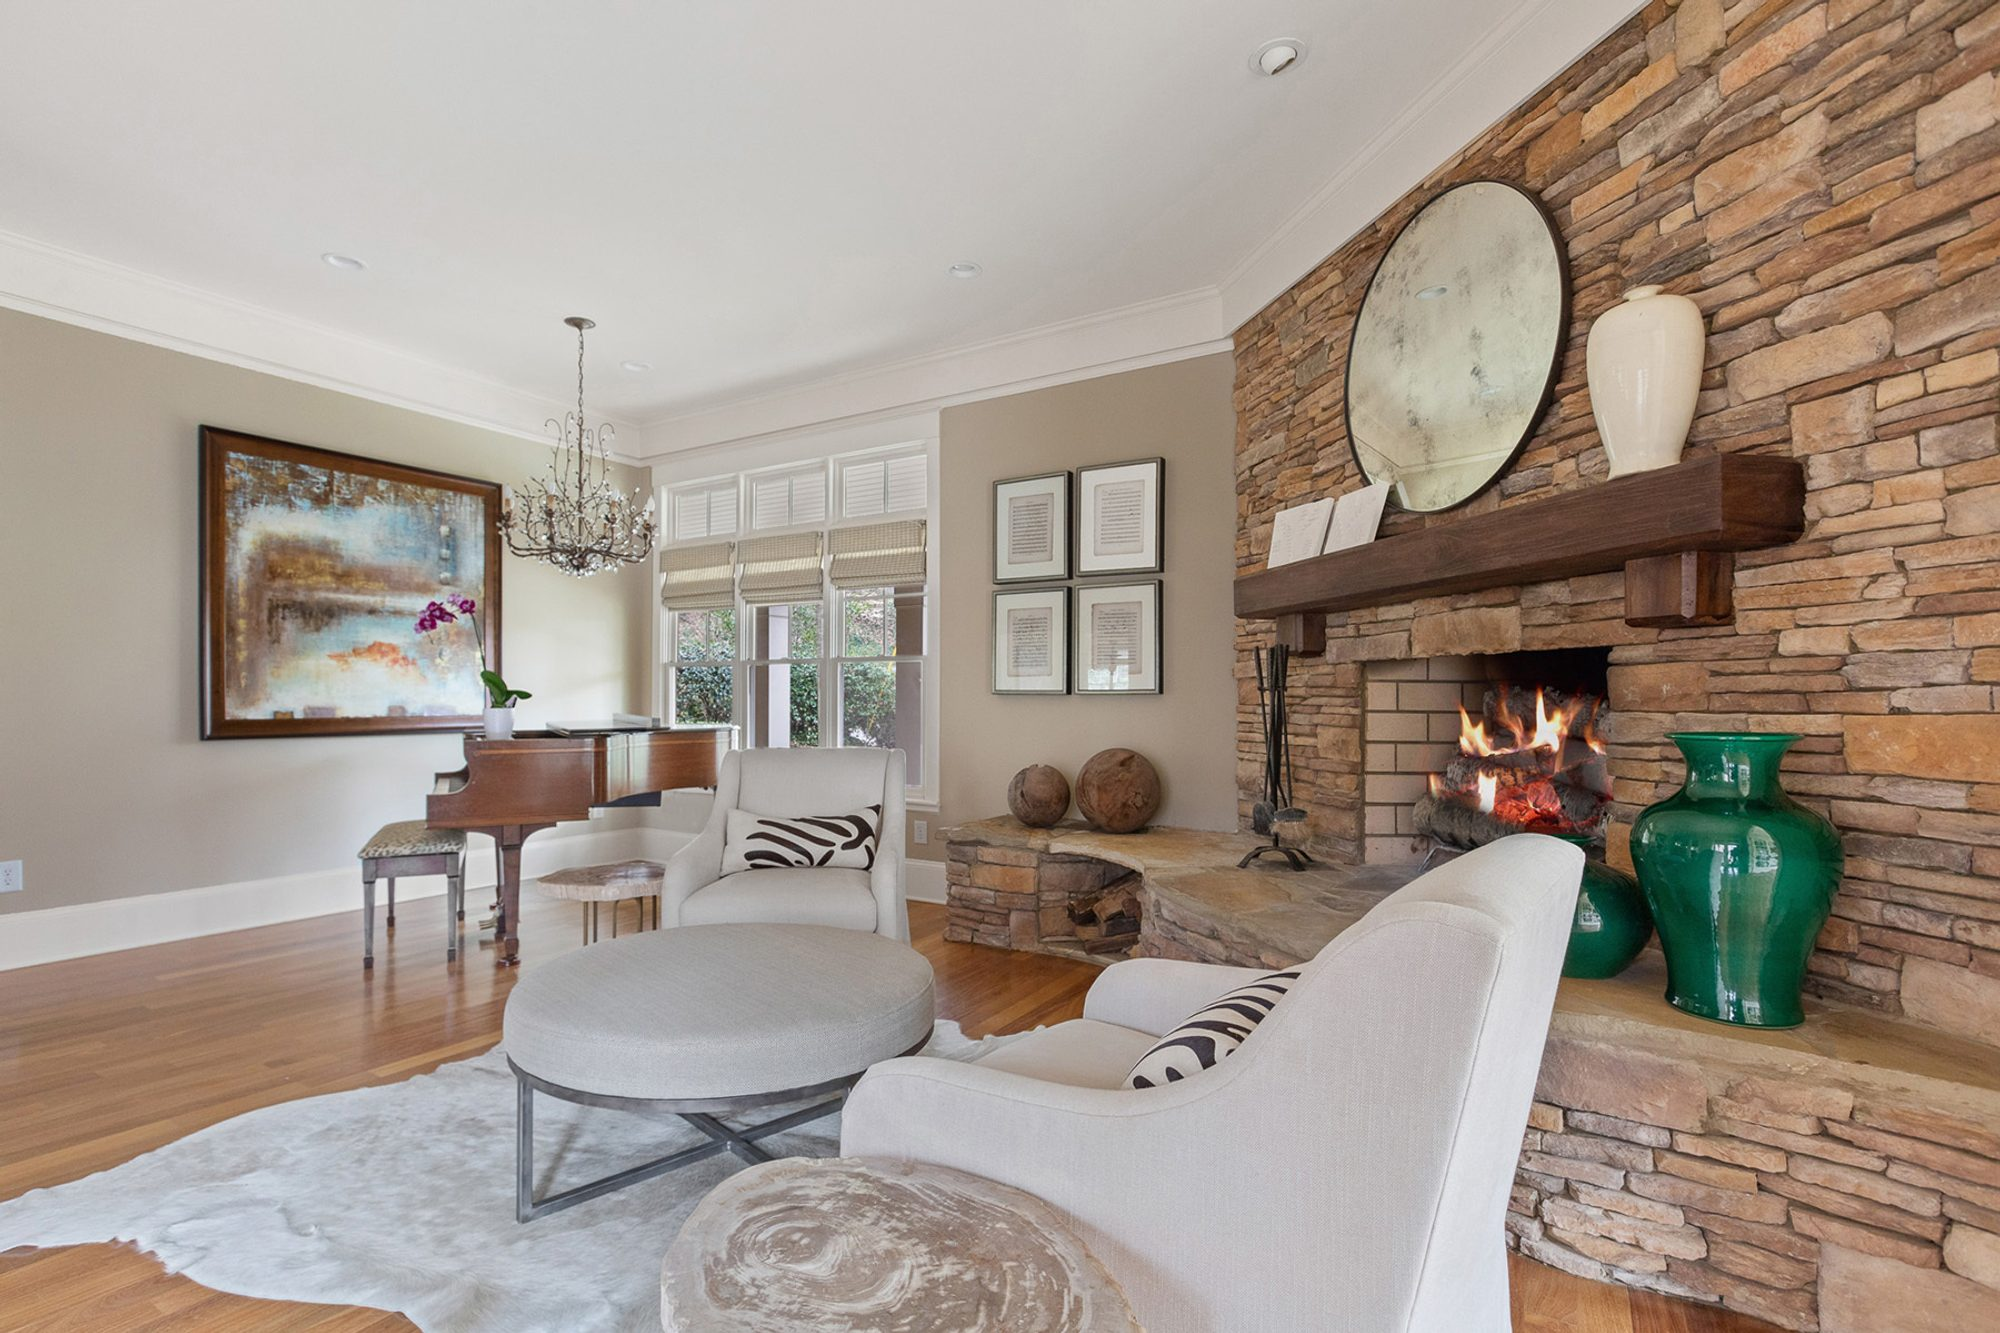 Fireplace surround built with warm colored stacked fieldstone, a large raised hearth and real wood shelf.